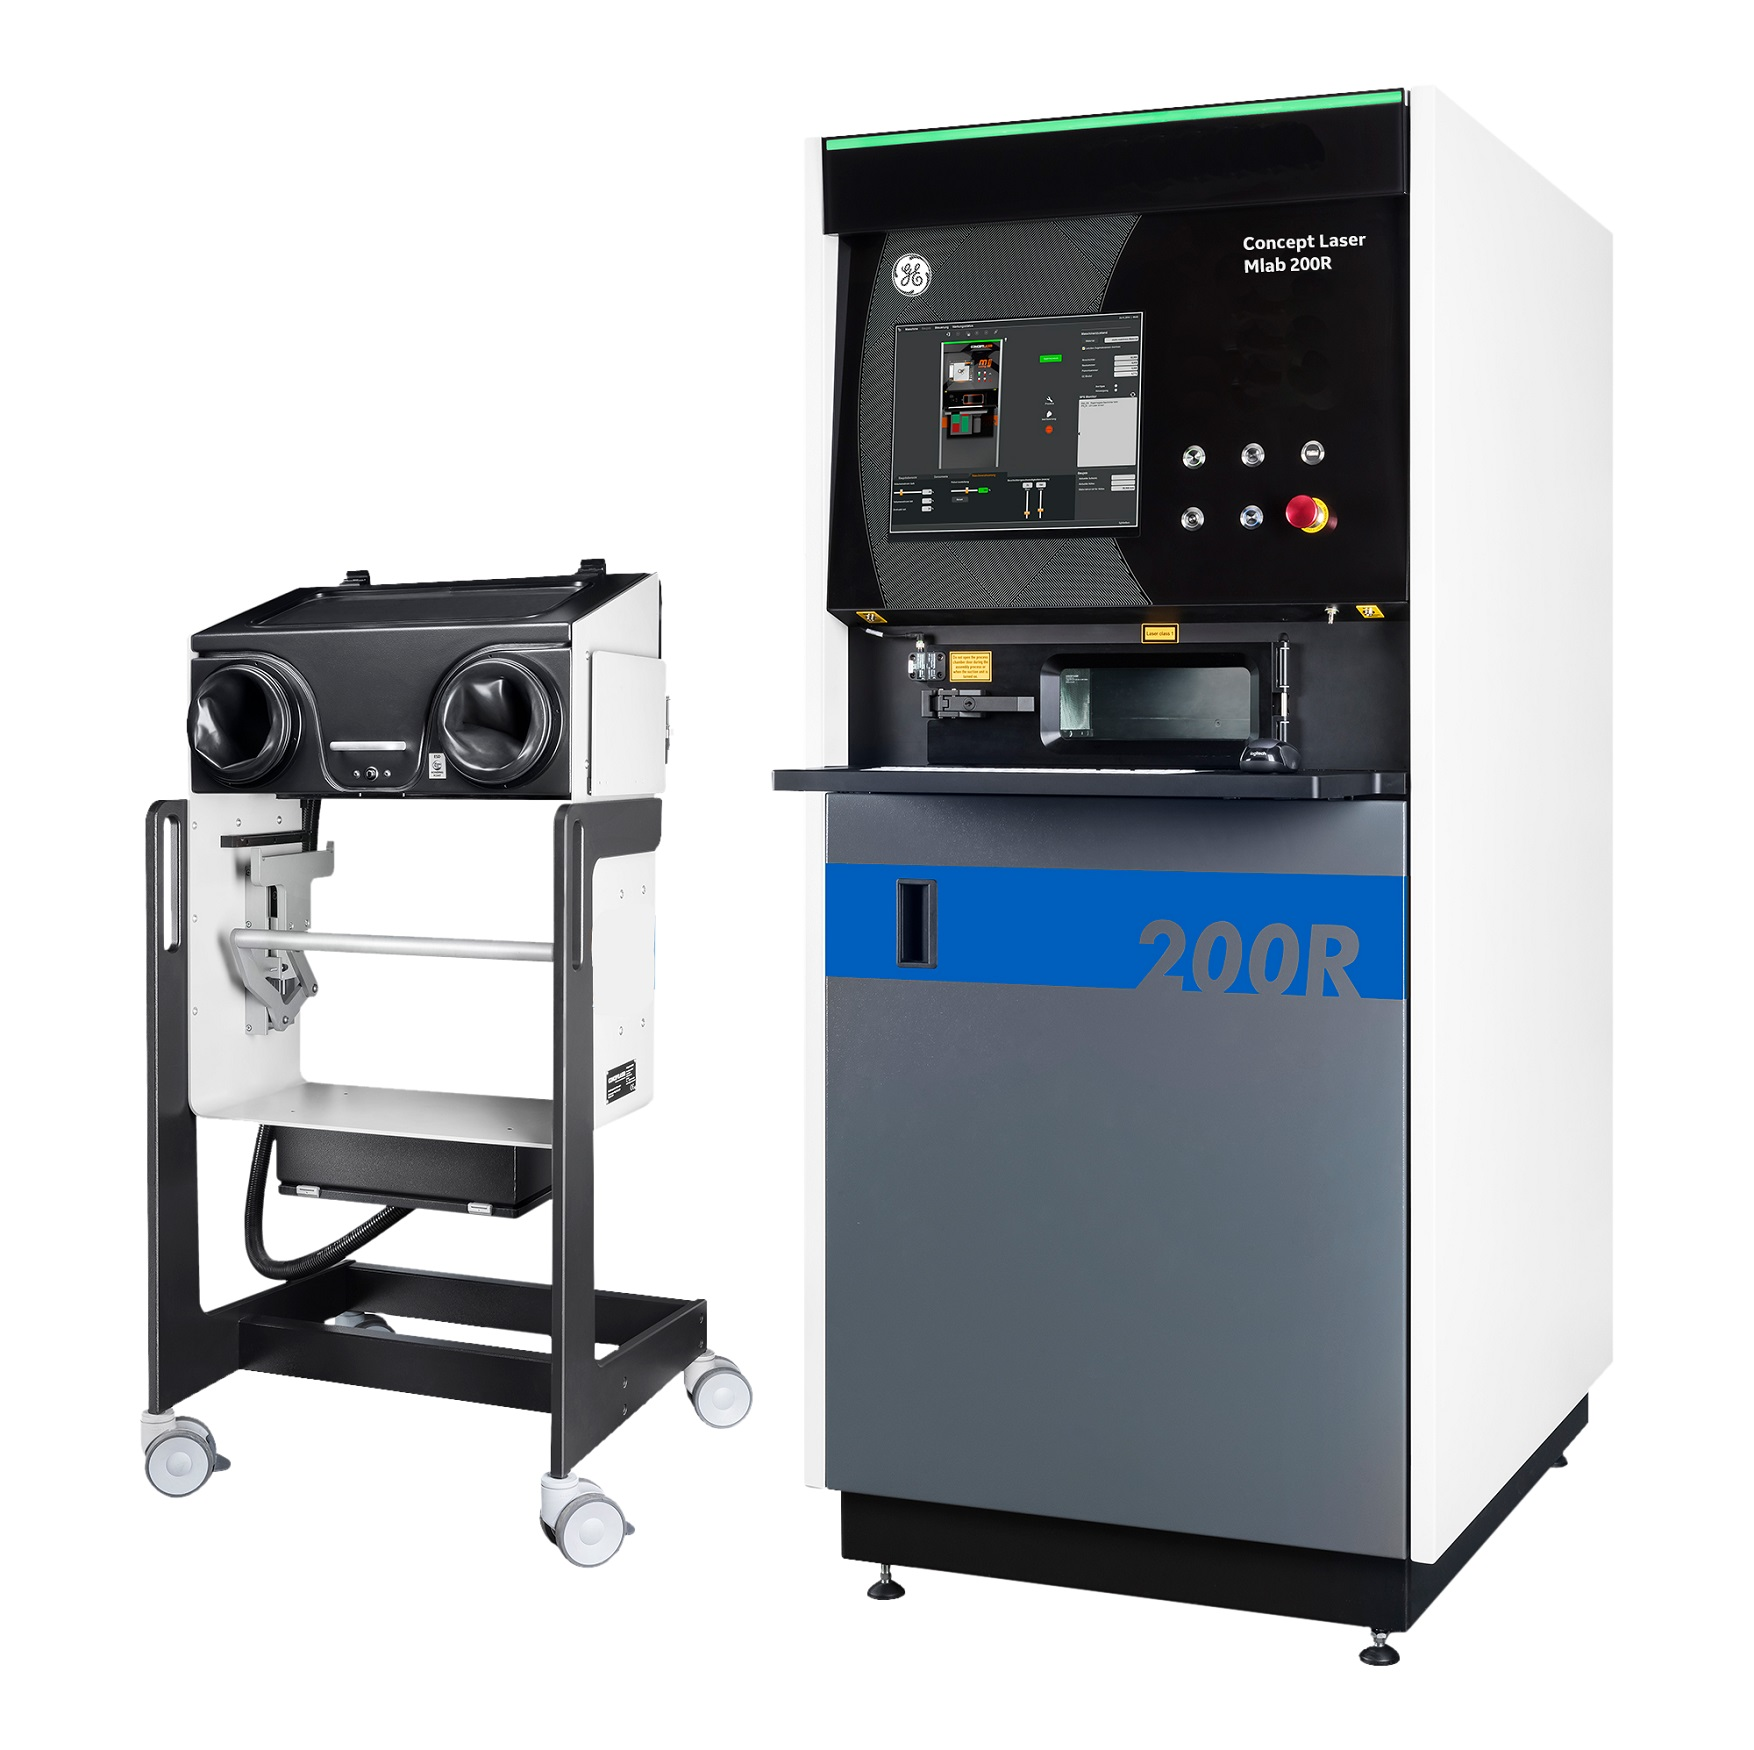 mlab cusing 200r direct metal laser melting (dmlm) machine